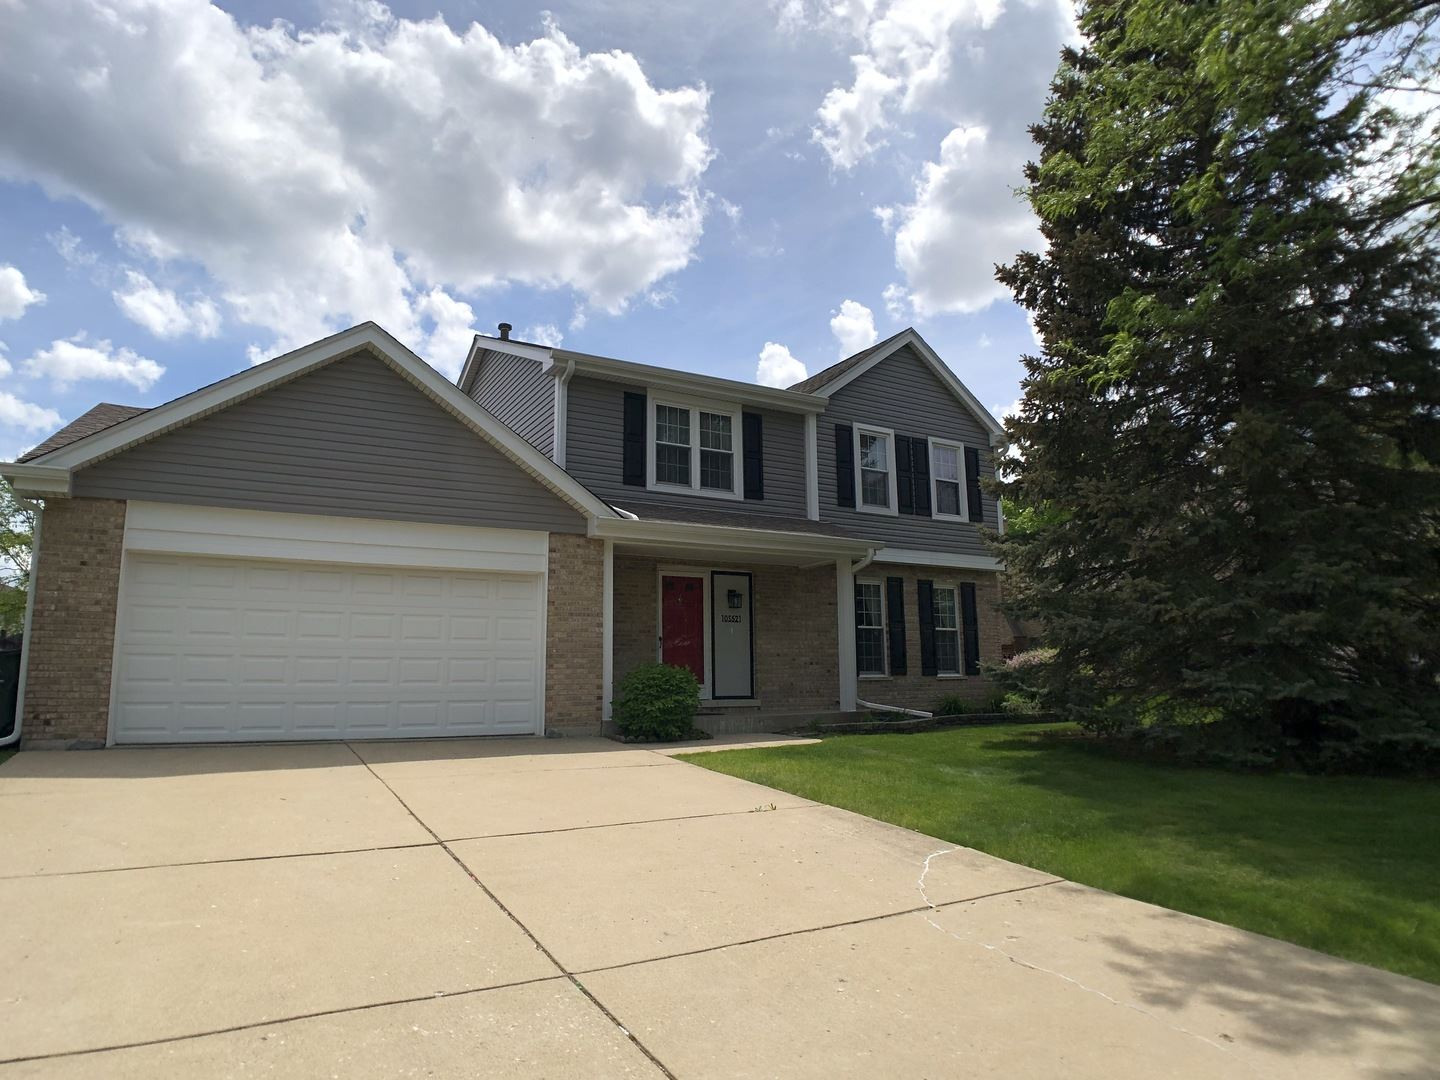 10S521 Dunham Drive, Downers Grove, IL 60516 - #: 11095612